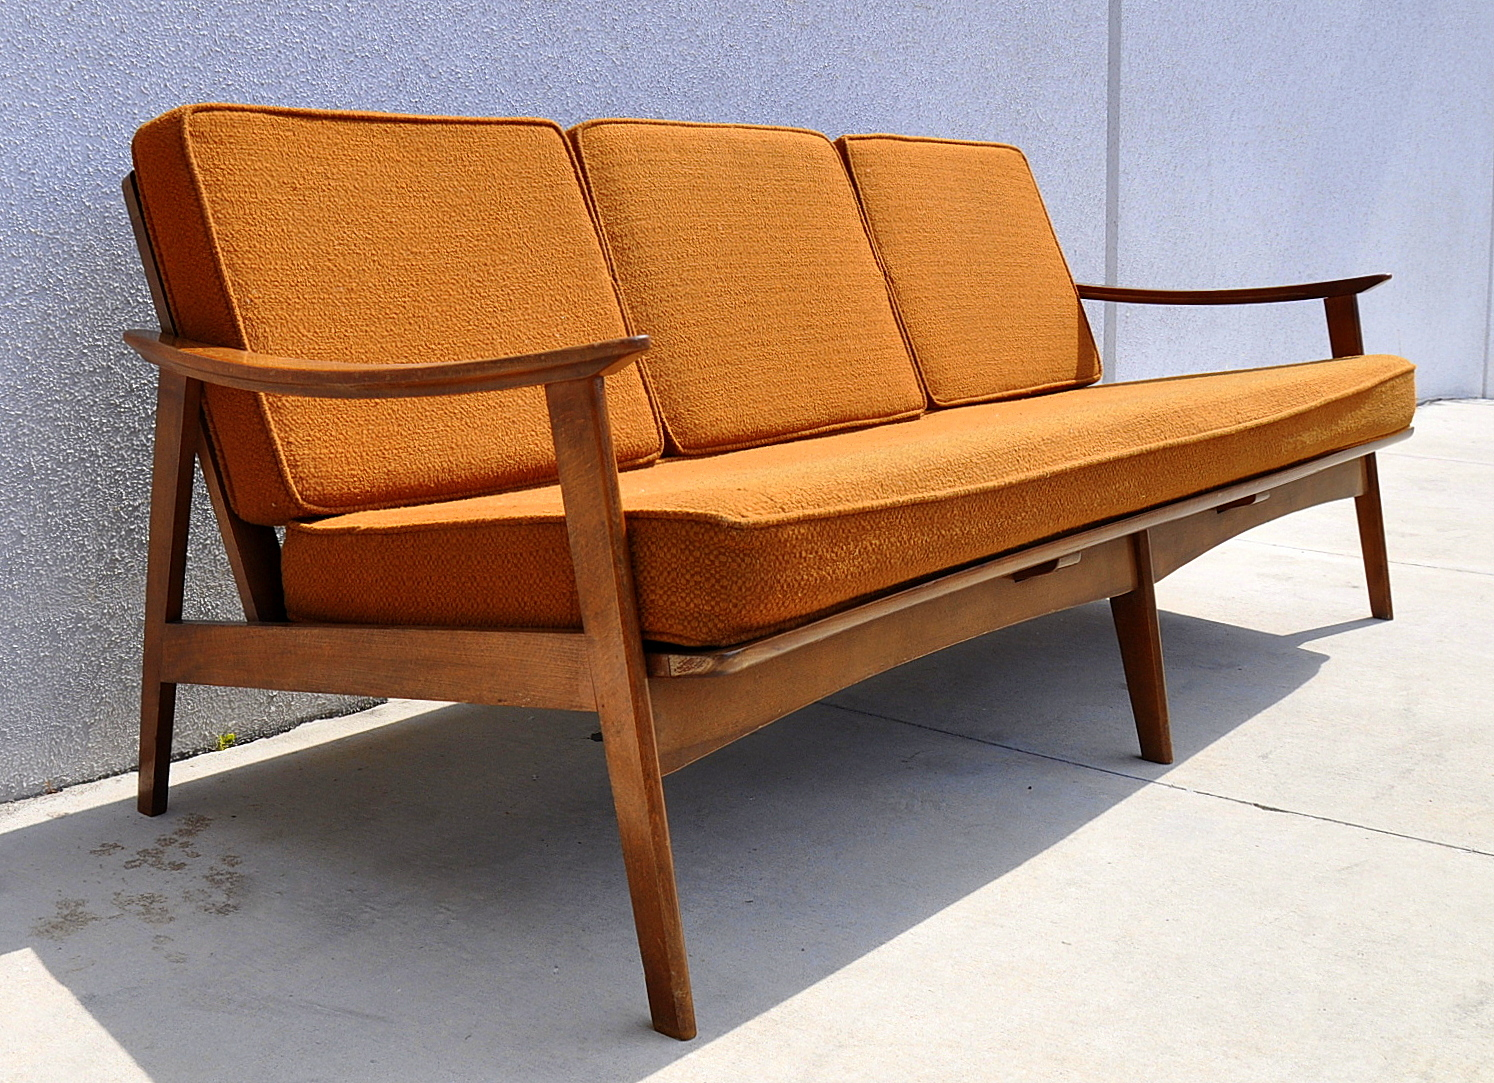 monday november 5 2012 - Mid Century Modern Furniture Of The 1950s